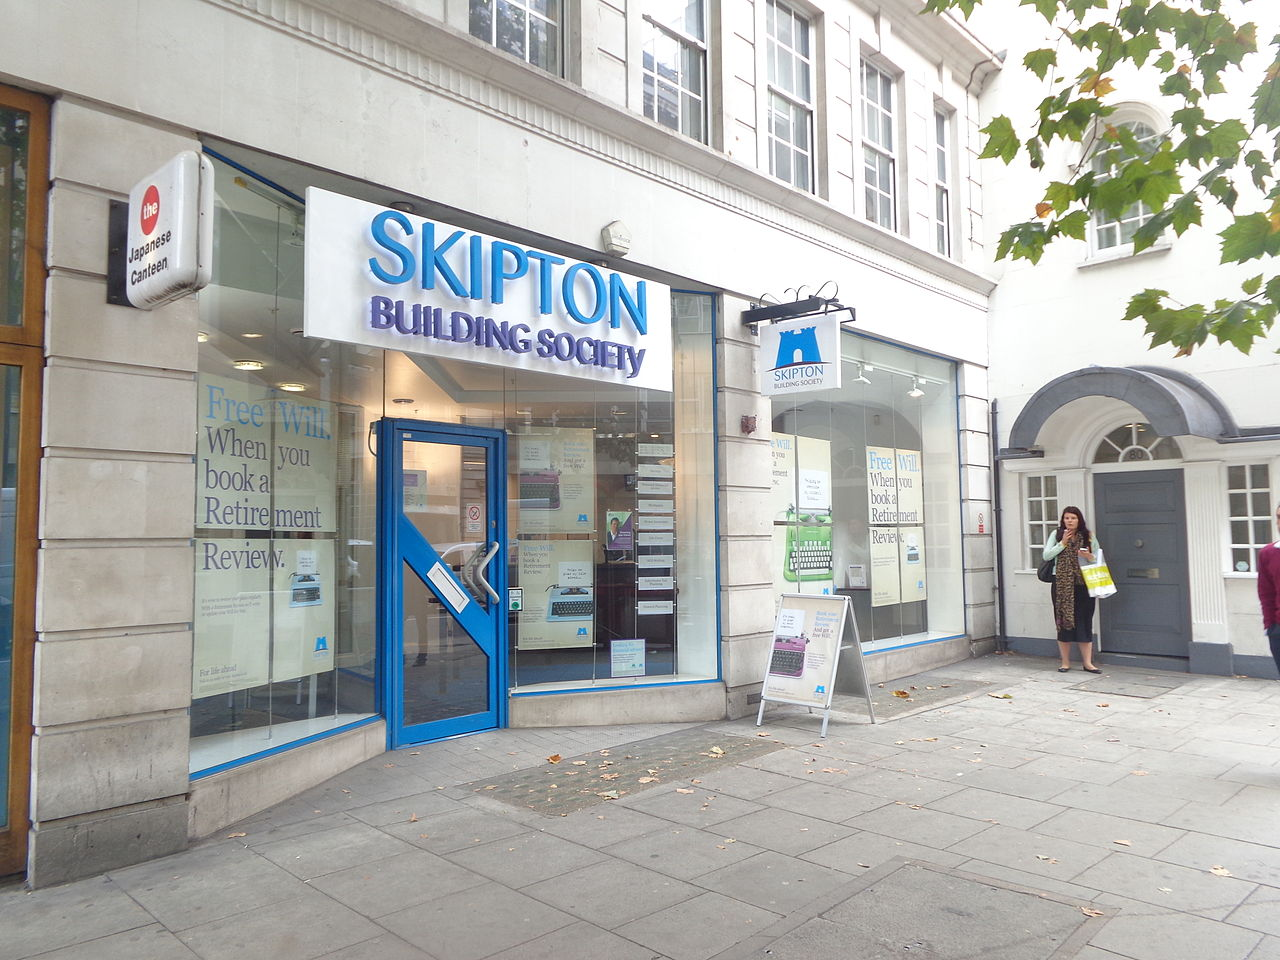 Skipton Building Society Intermediar